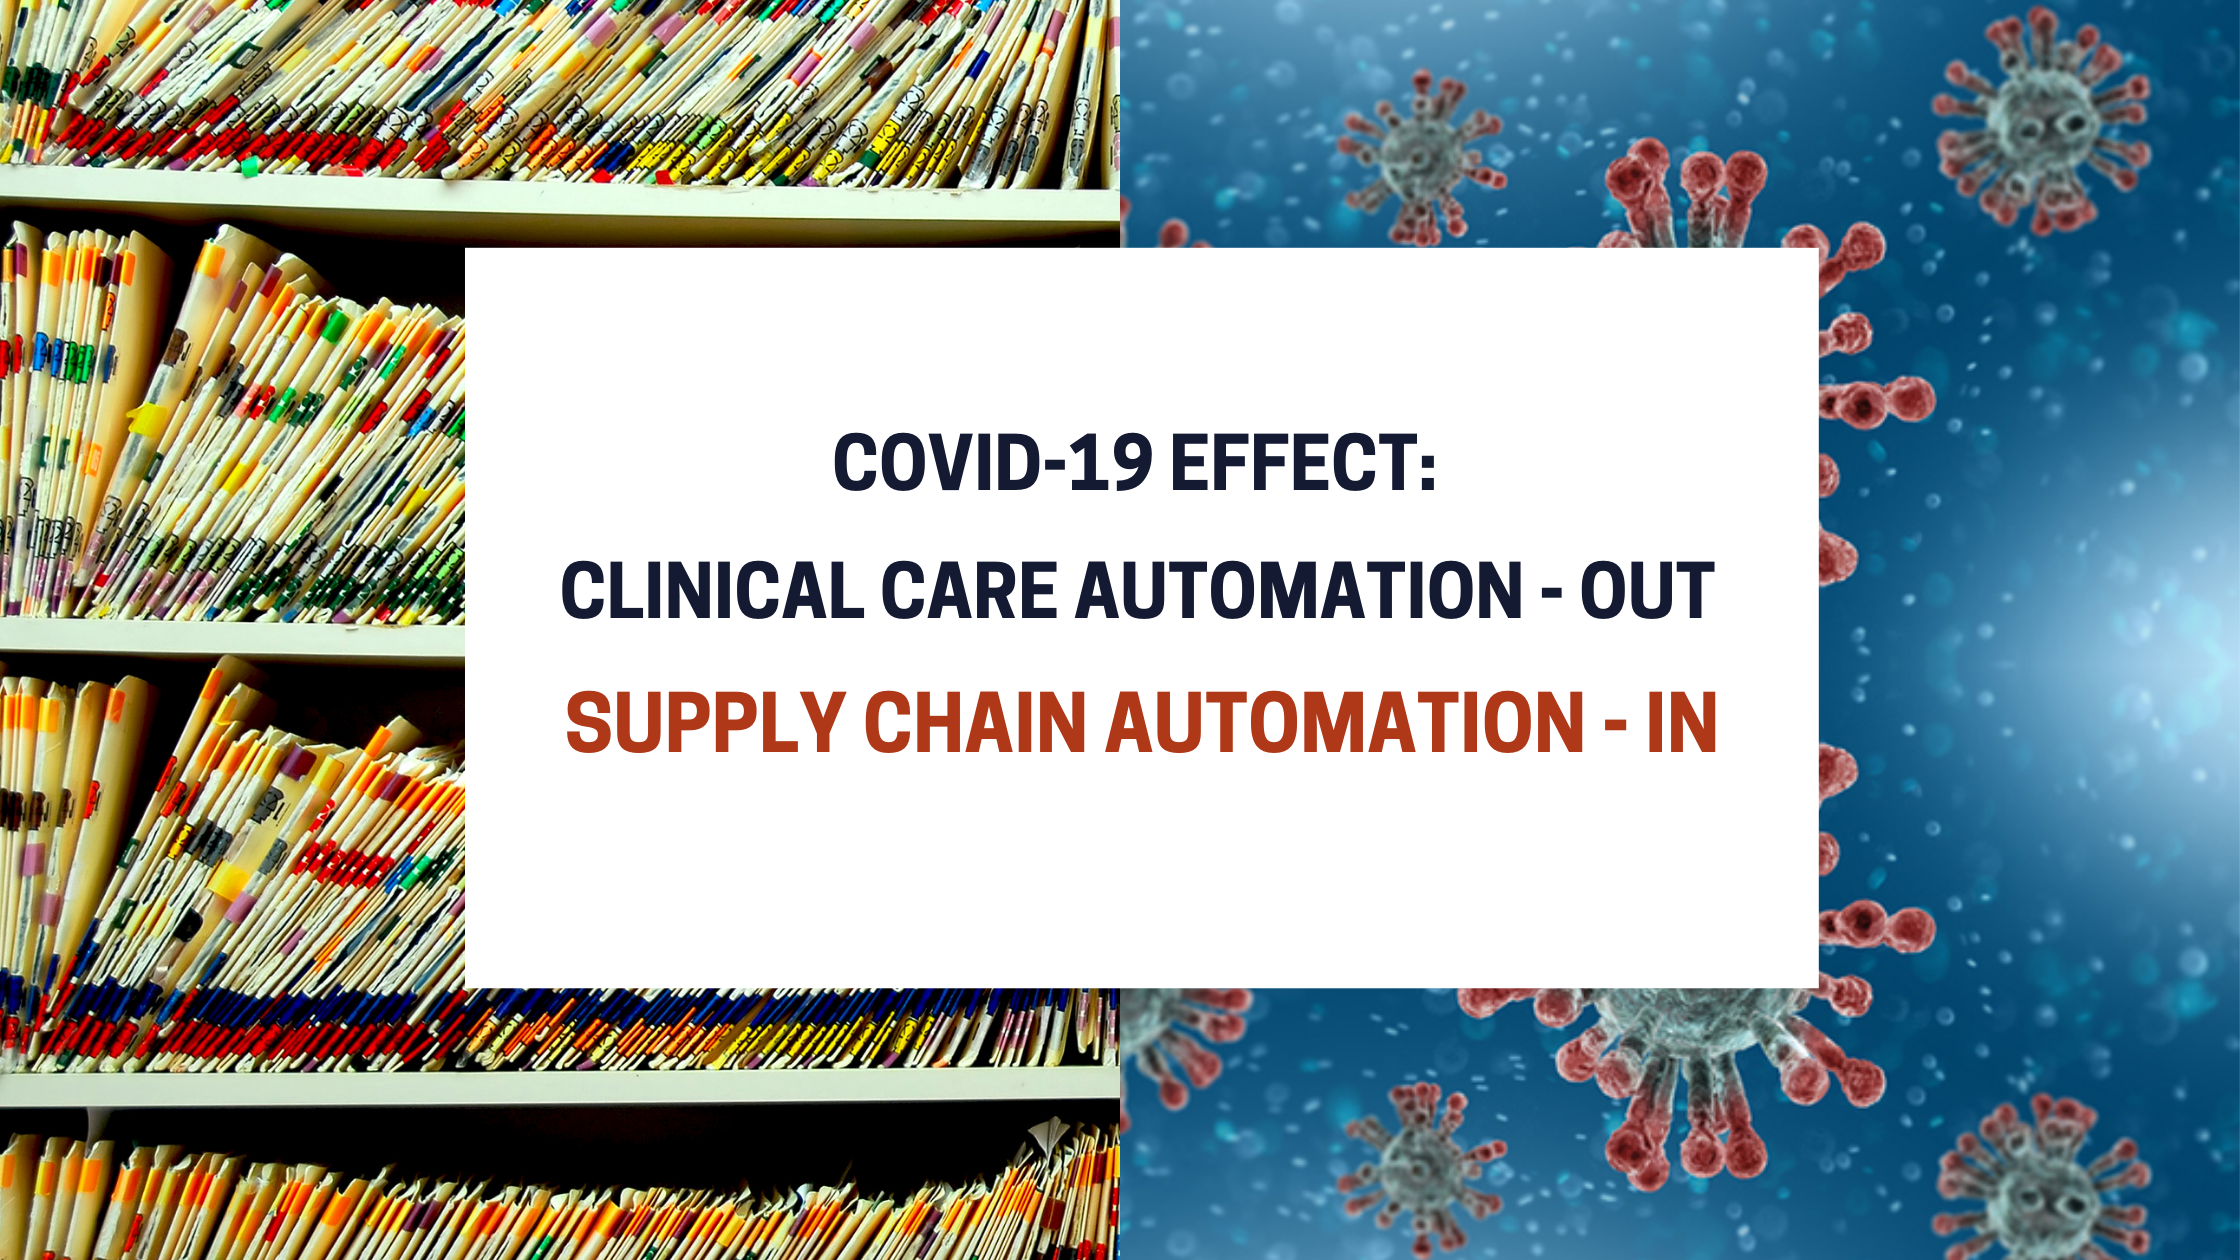 Blue and White Abstract Technology Blog Banner - COVID-19 effect: Clinical Care Automation - OUT. Supply Chain Automation - IN